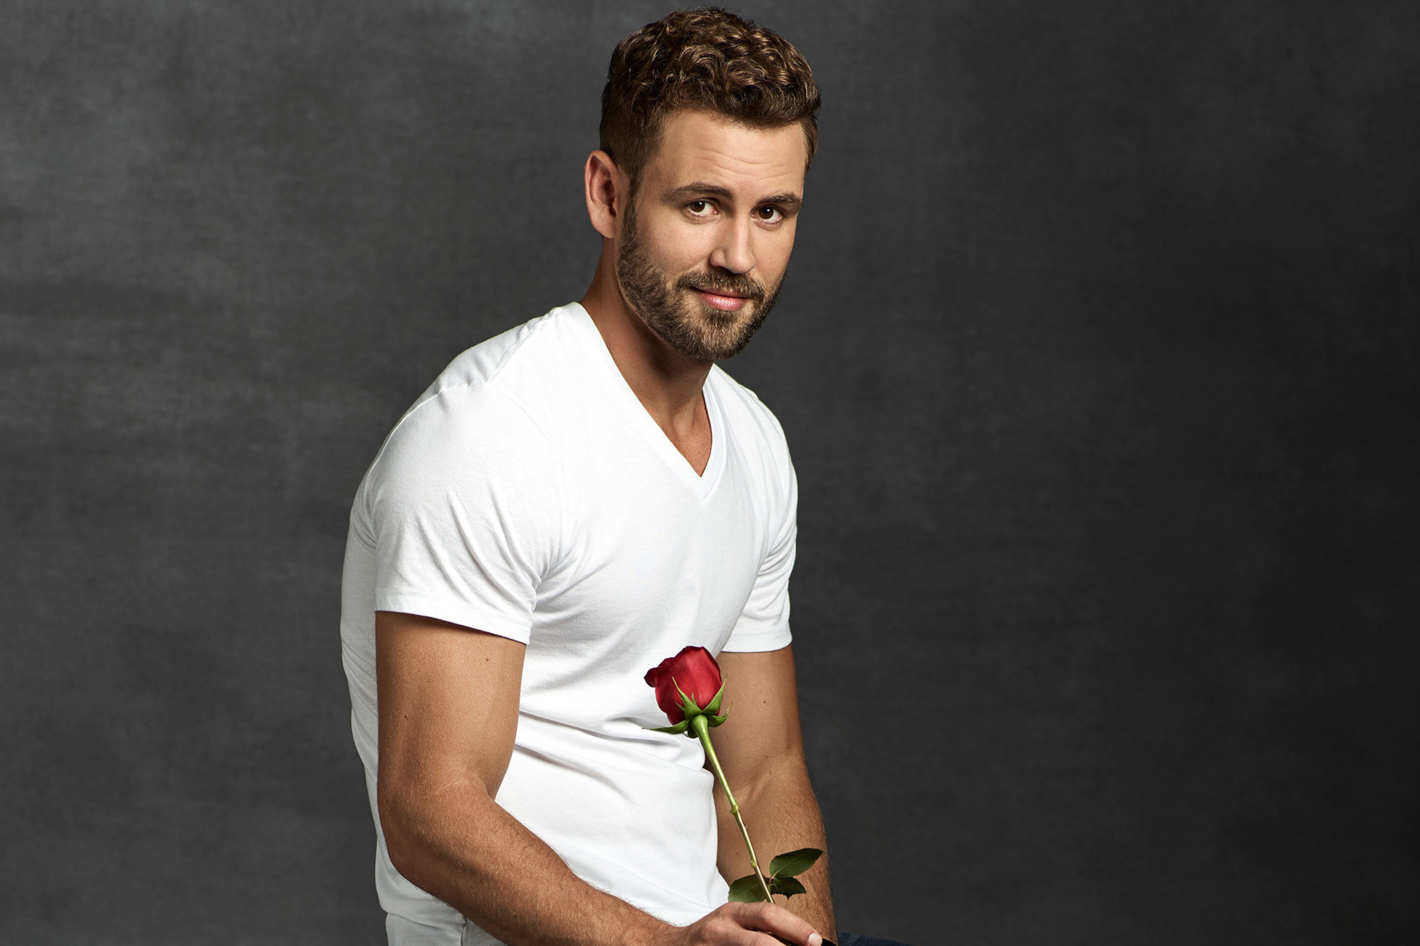 Superior Everything You Need To Know About The Next Bachelor, Nick Viall